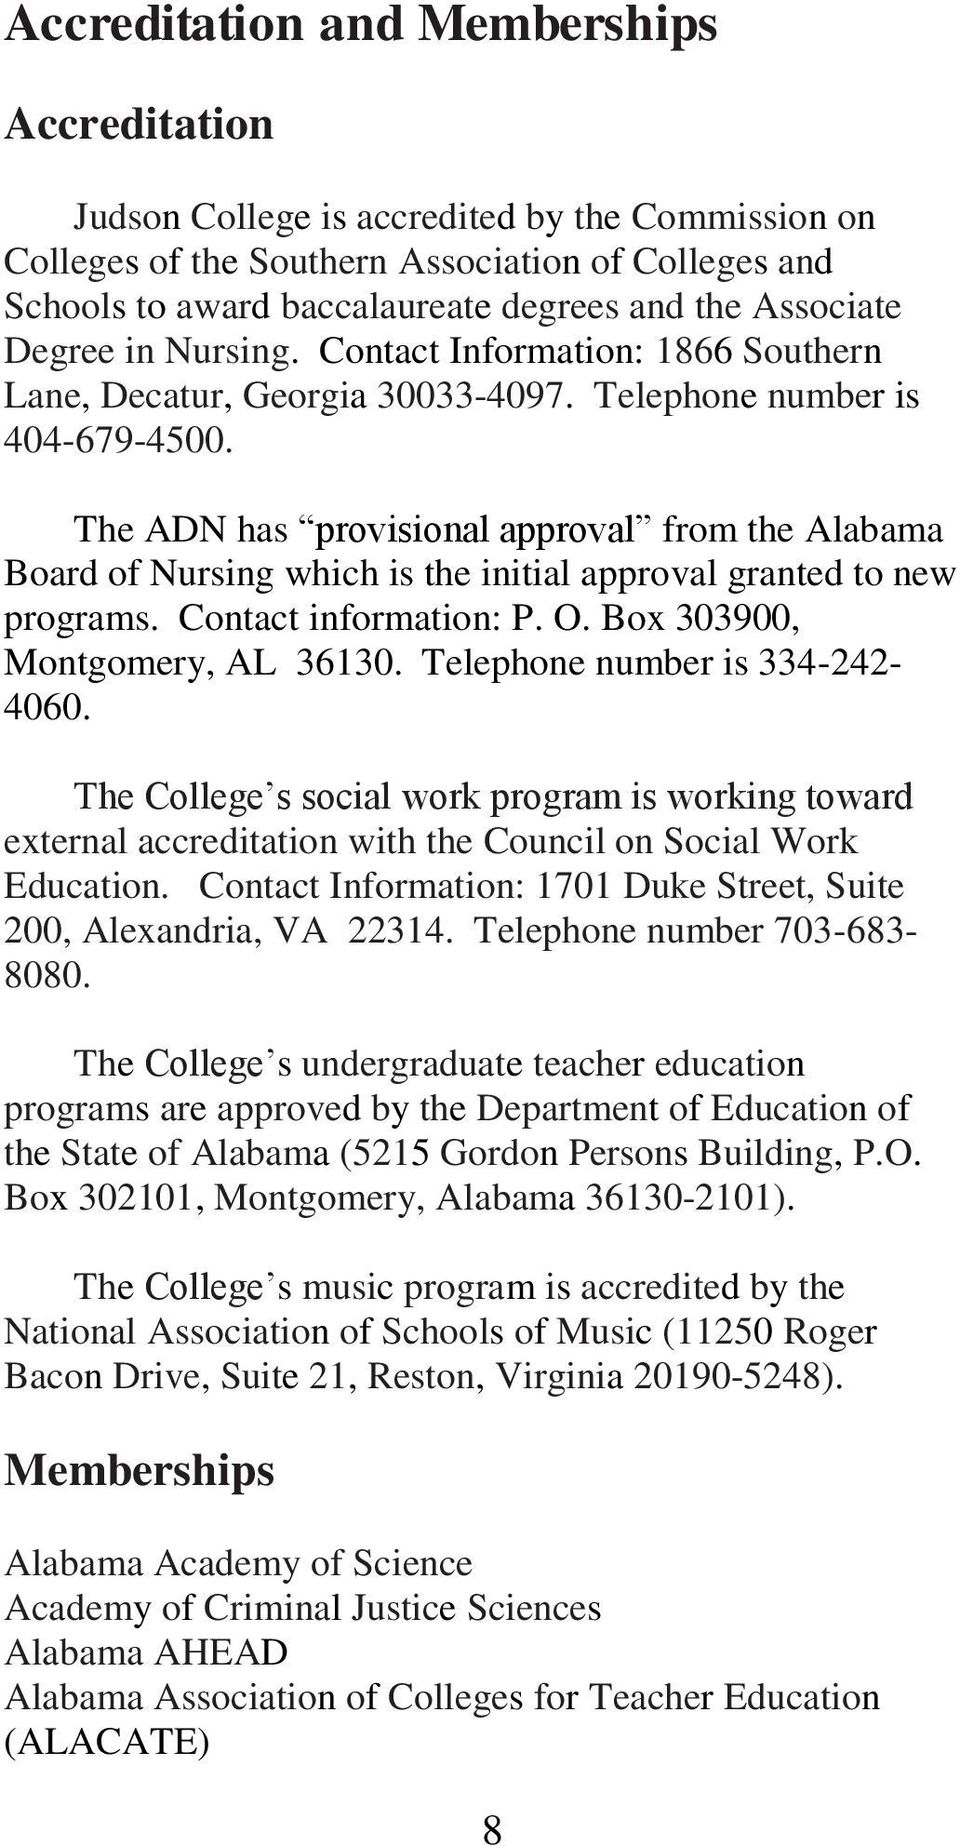 The ADN has provisional approval from the Alabama Board of Nursing which is the initial approval granted to new programs. Contact information: P. O. Box 303900, Montgomery, AL 36130.